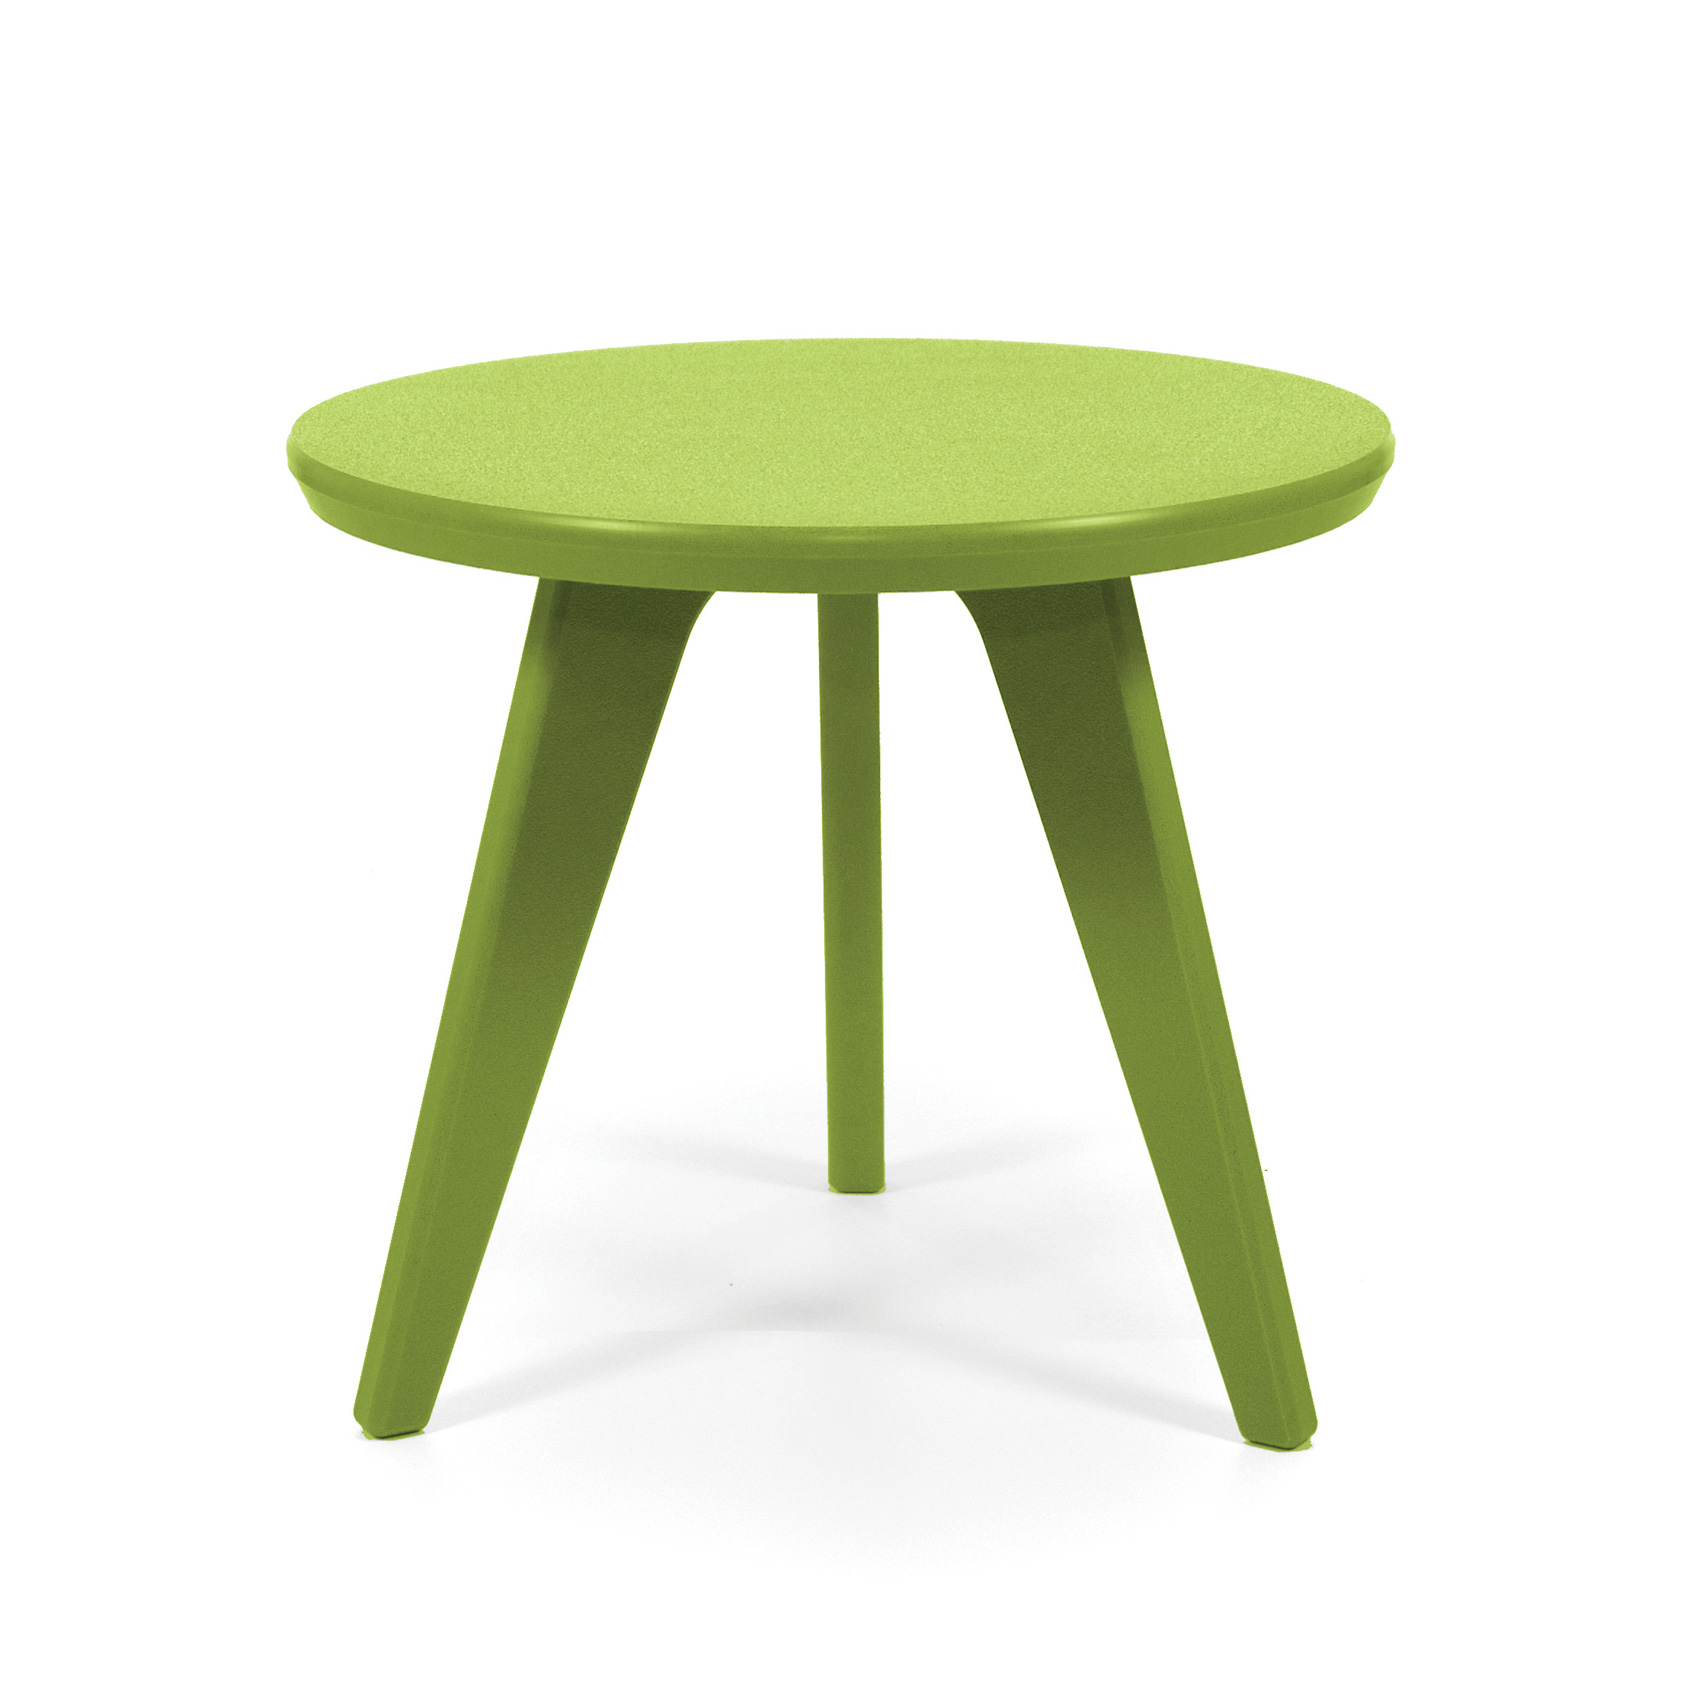 round end table for outdoor lollygagging loll designs satellite green furniture tables product thumbnail placeholder ashley side laura living best reclining sofa plywood lexington